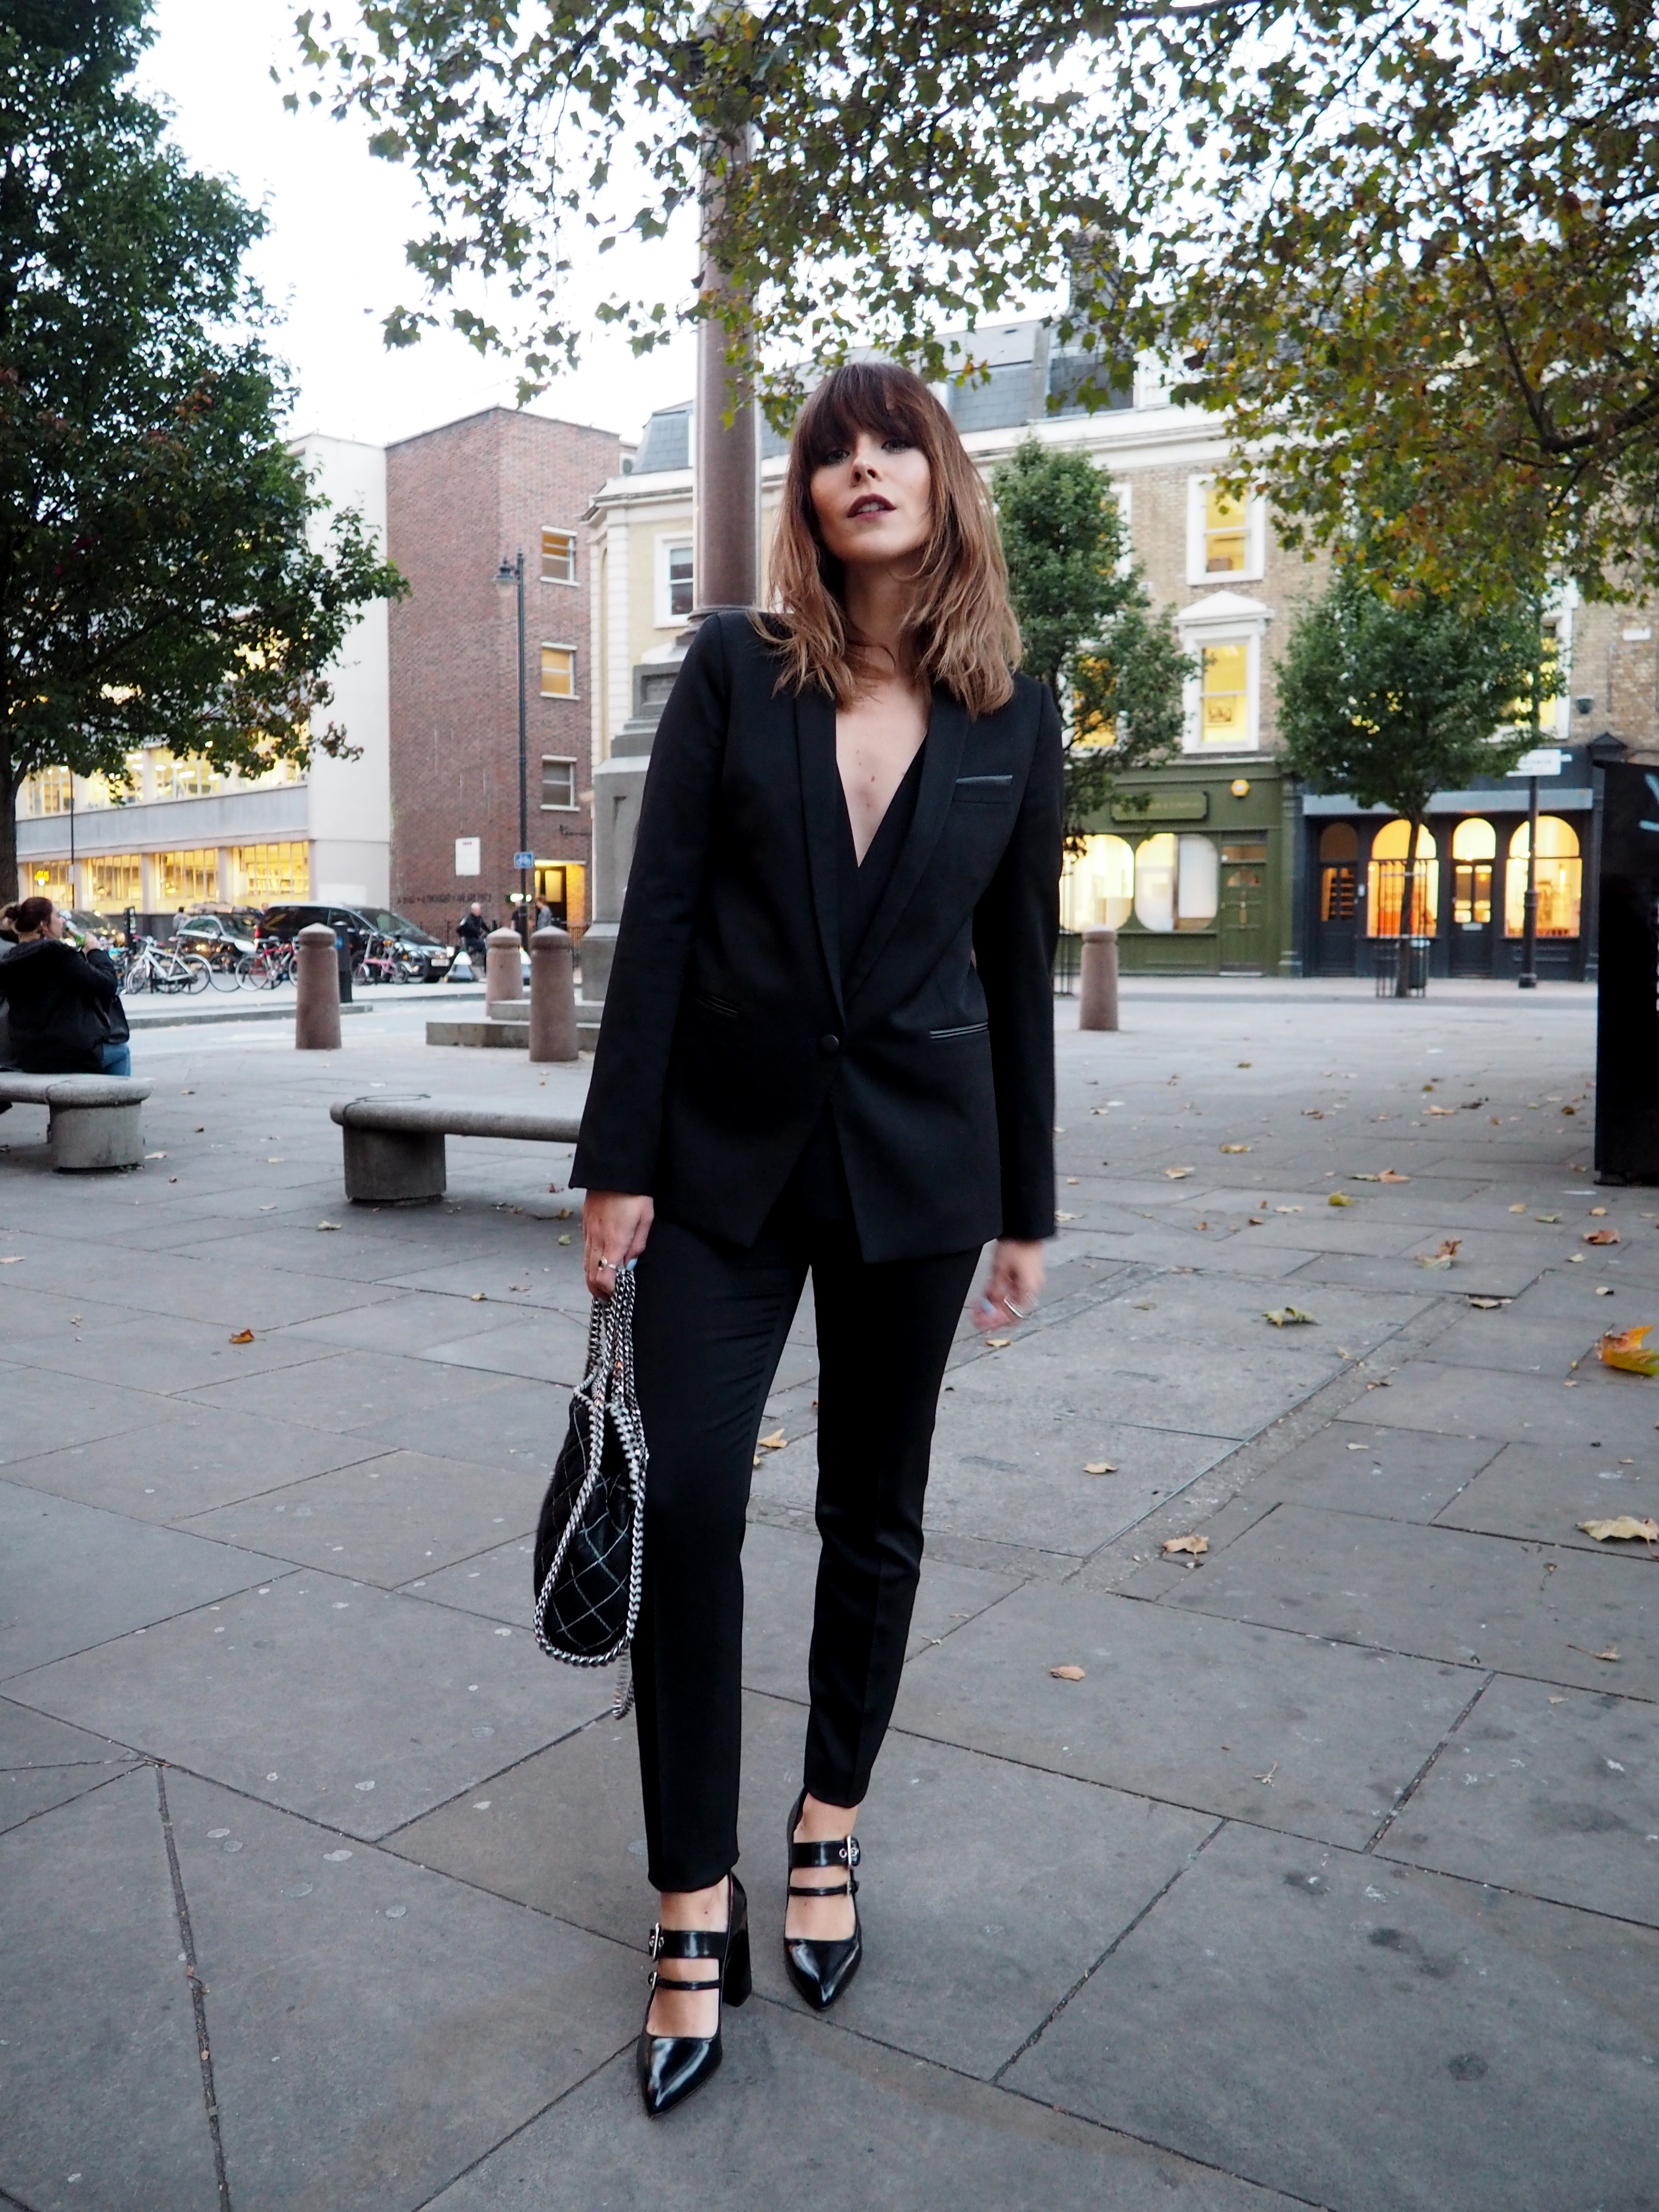 MEGAN ELLABY IN THE KOOPLES SUIT AND PRADA SHOES